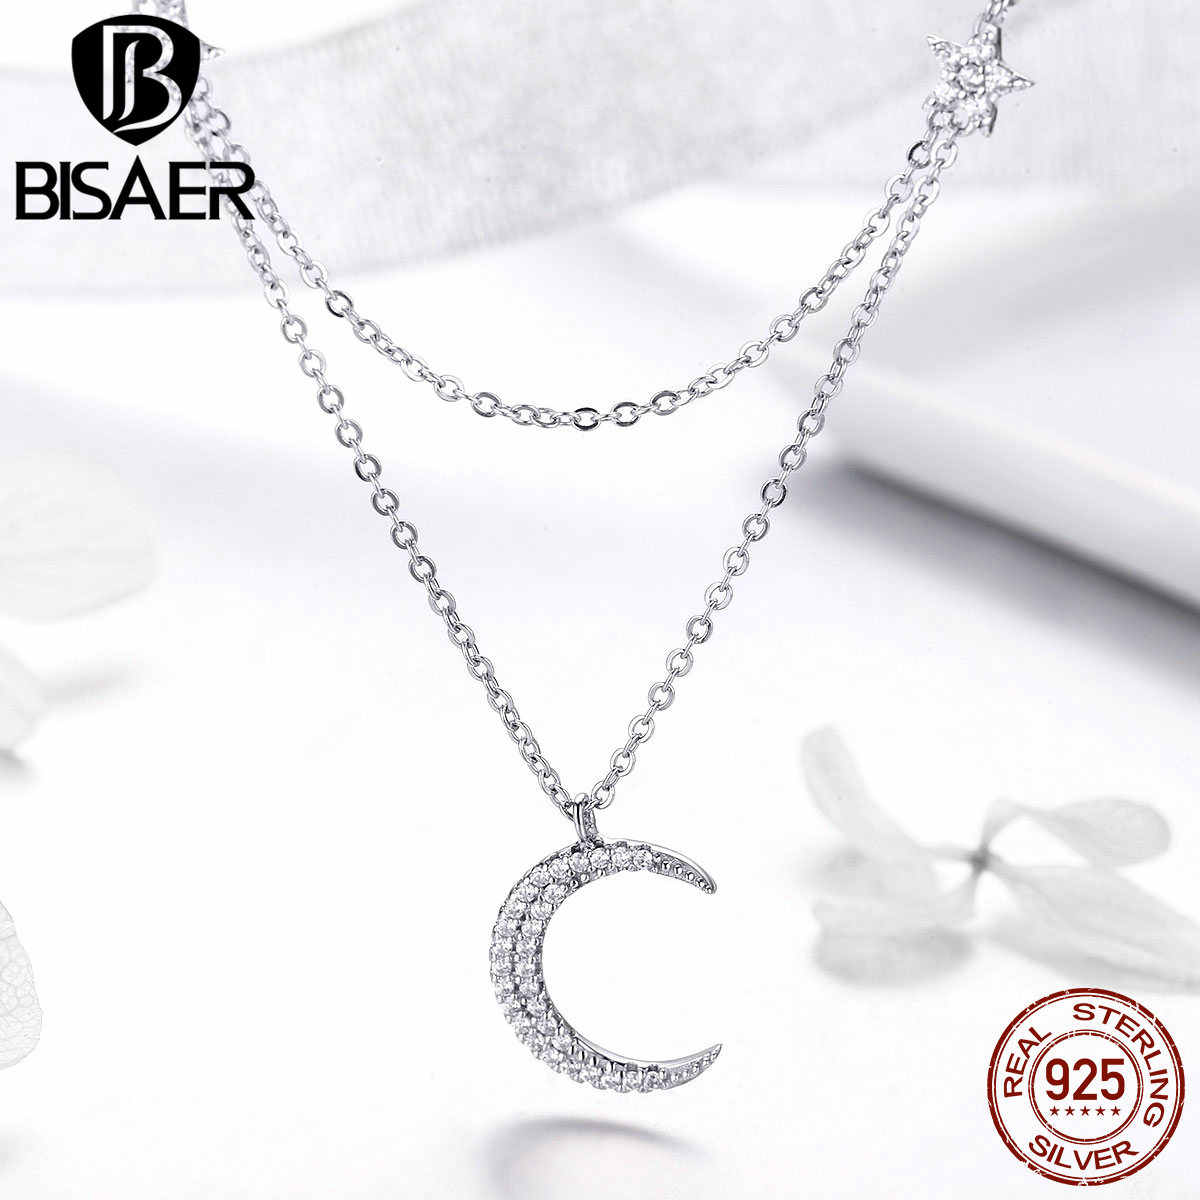 BISAER Double Layers 925 Sterling Silver Moon Star Pendant Necklace for Women Elegant Korean Choker Necklaces Jewelry GAN038